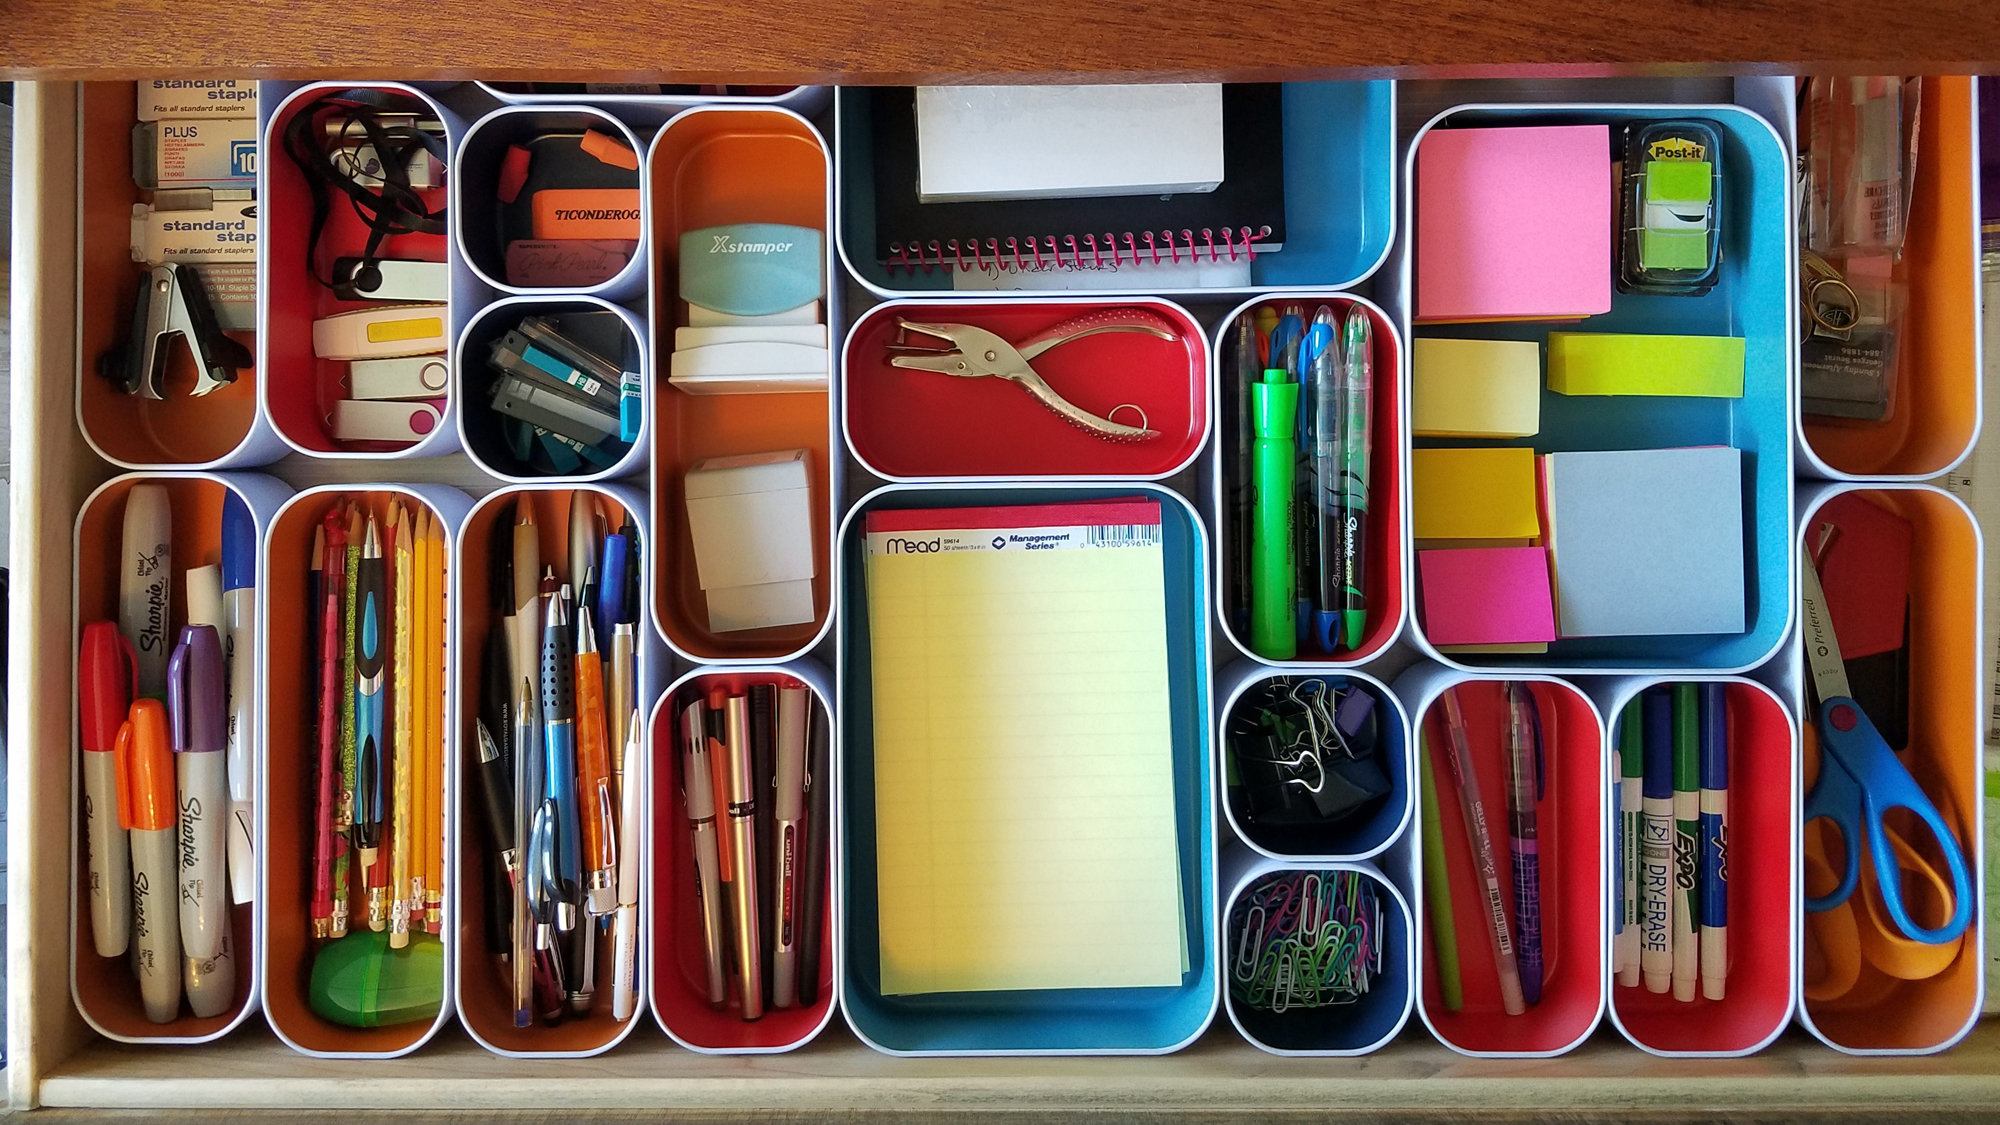 Want to live more sustainably? Get organized